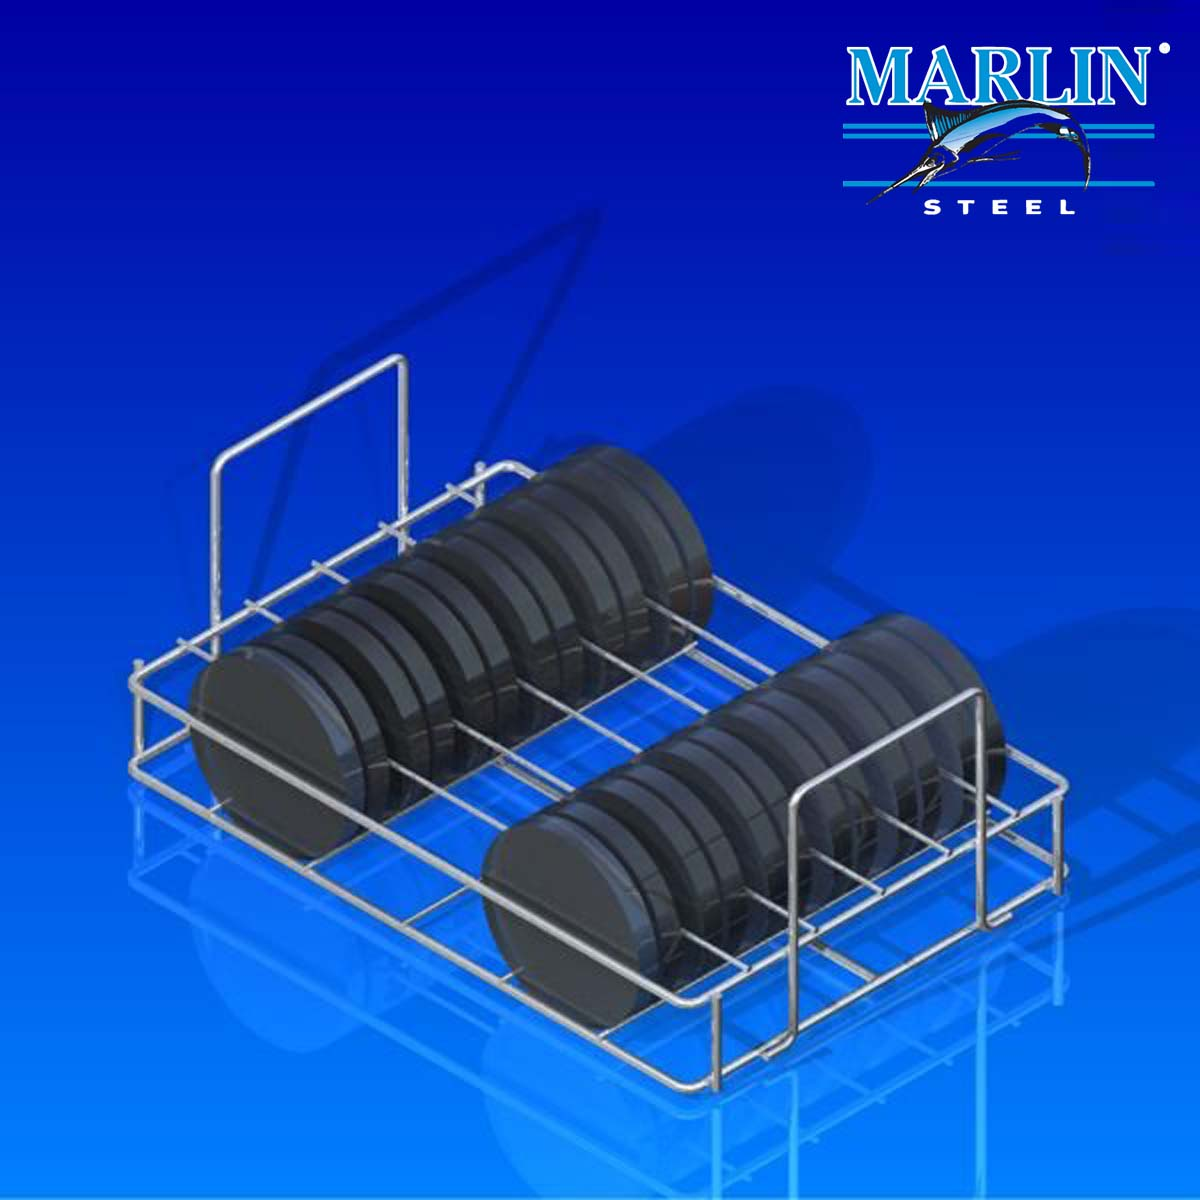 Marlin Steel Wire Baskets with Dividers 1131001